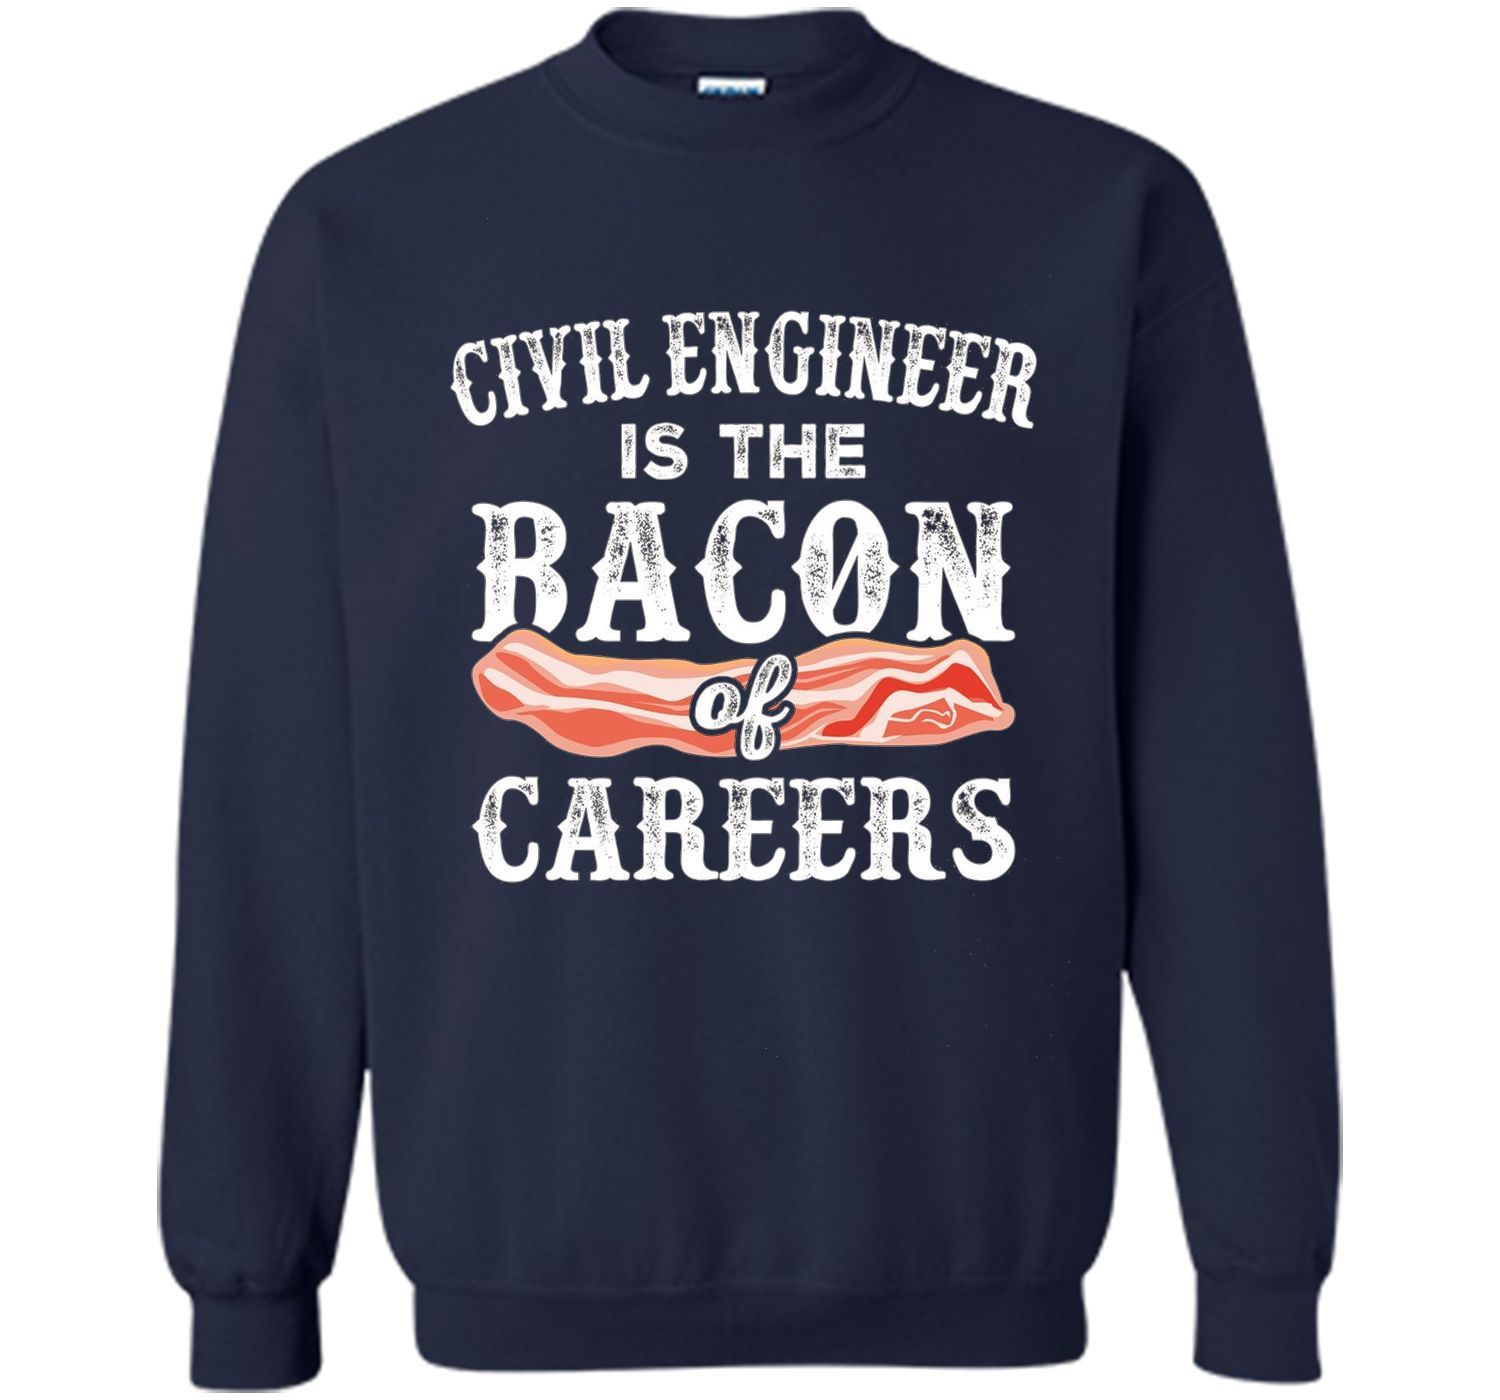 Civil Engineer The Bacon of Careers Funny Tee Vision T-Shirt